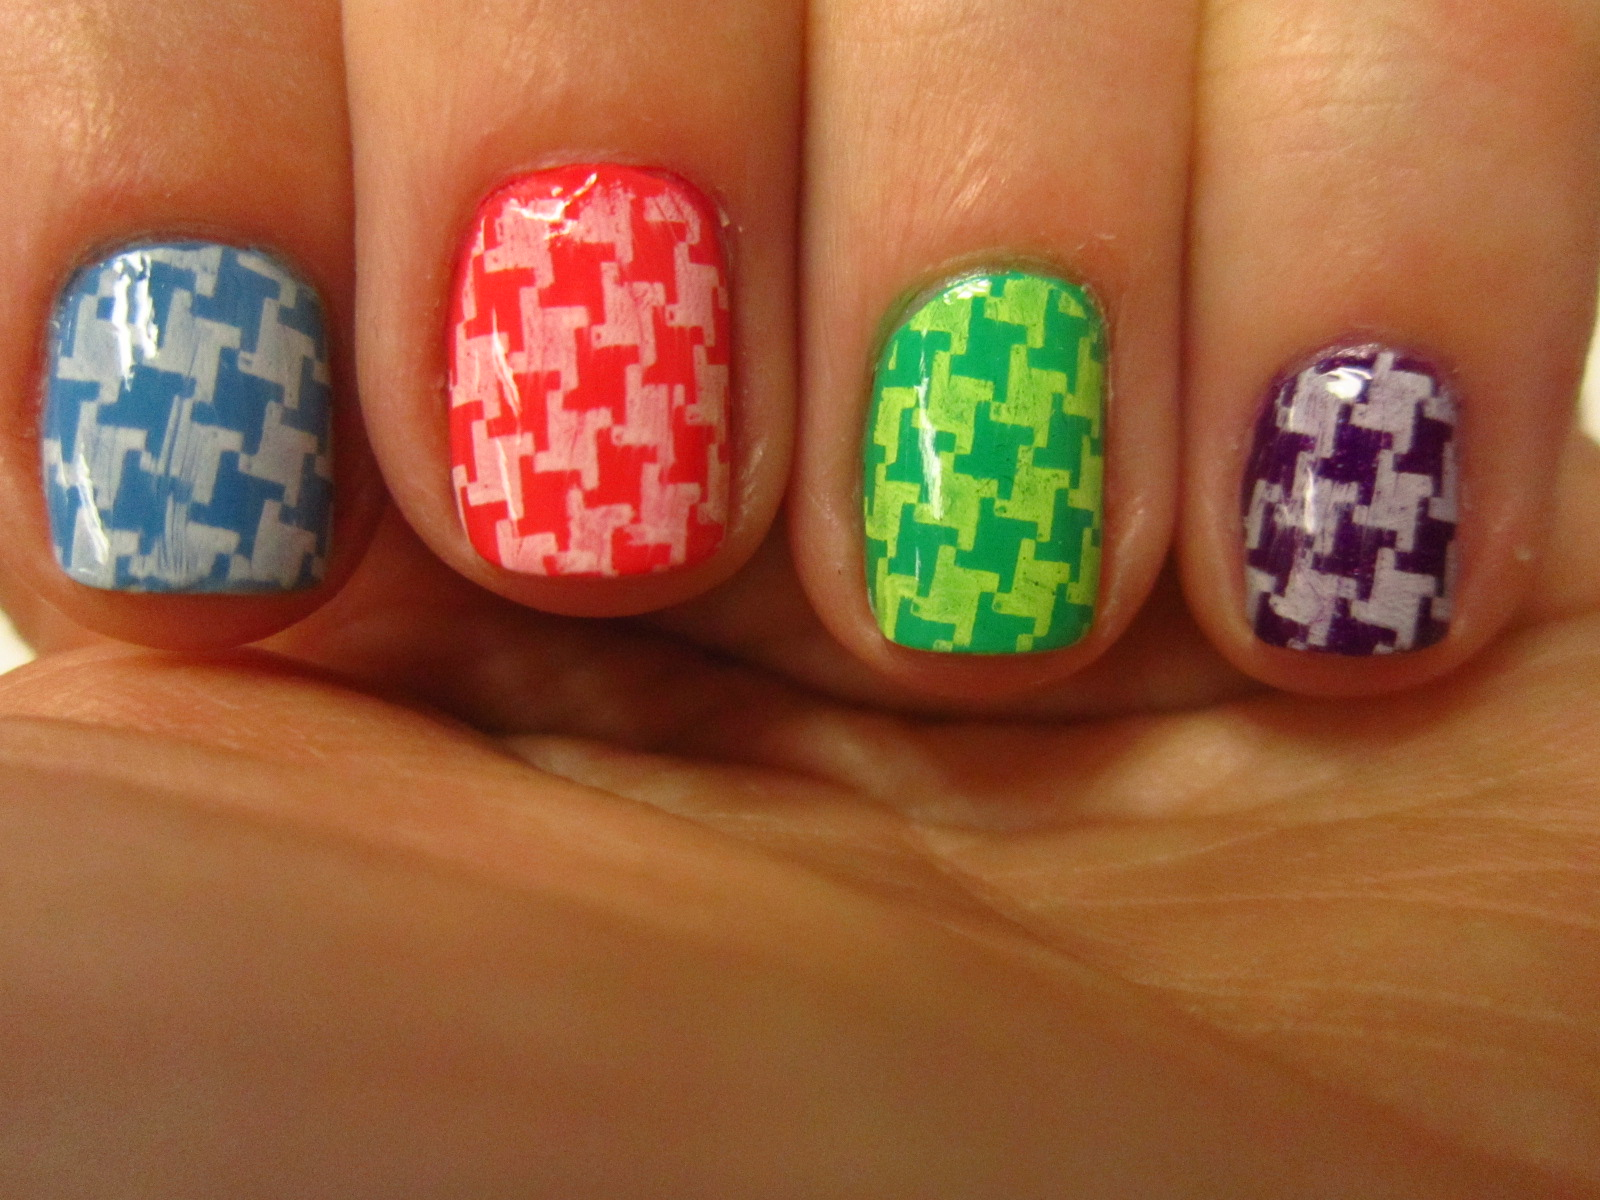 Posh Nail Art: The New 31 Day Challenge - Day 7 - Ombre or